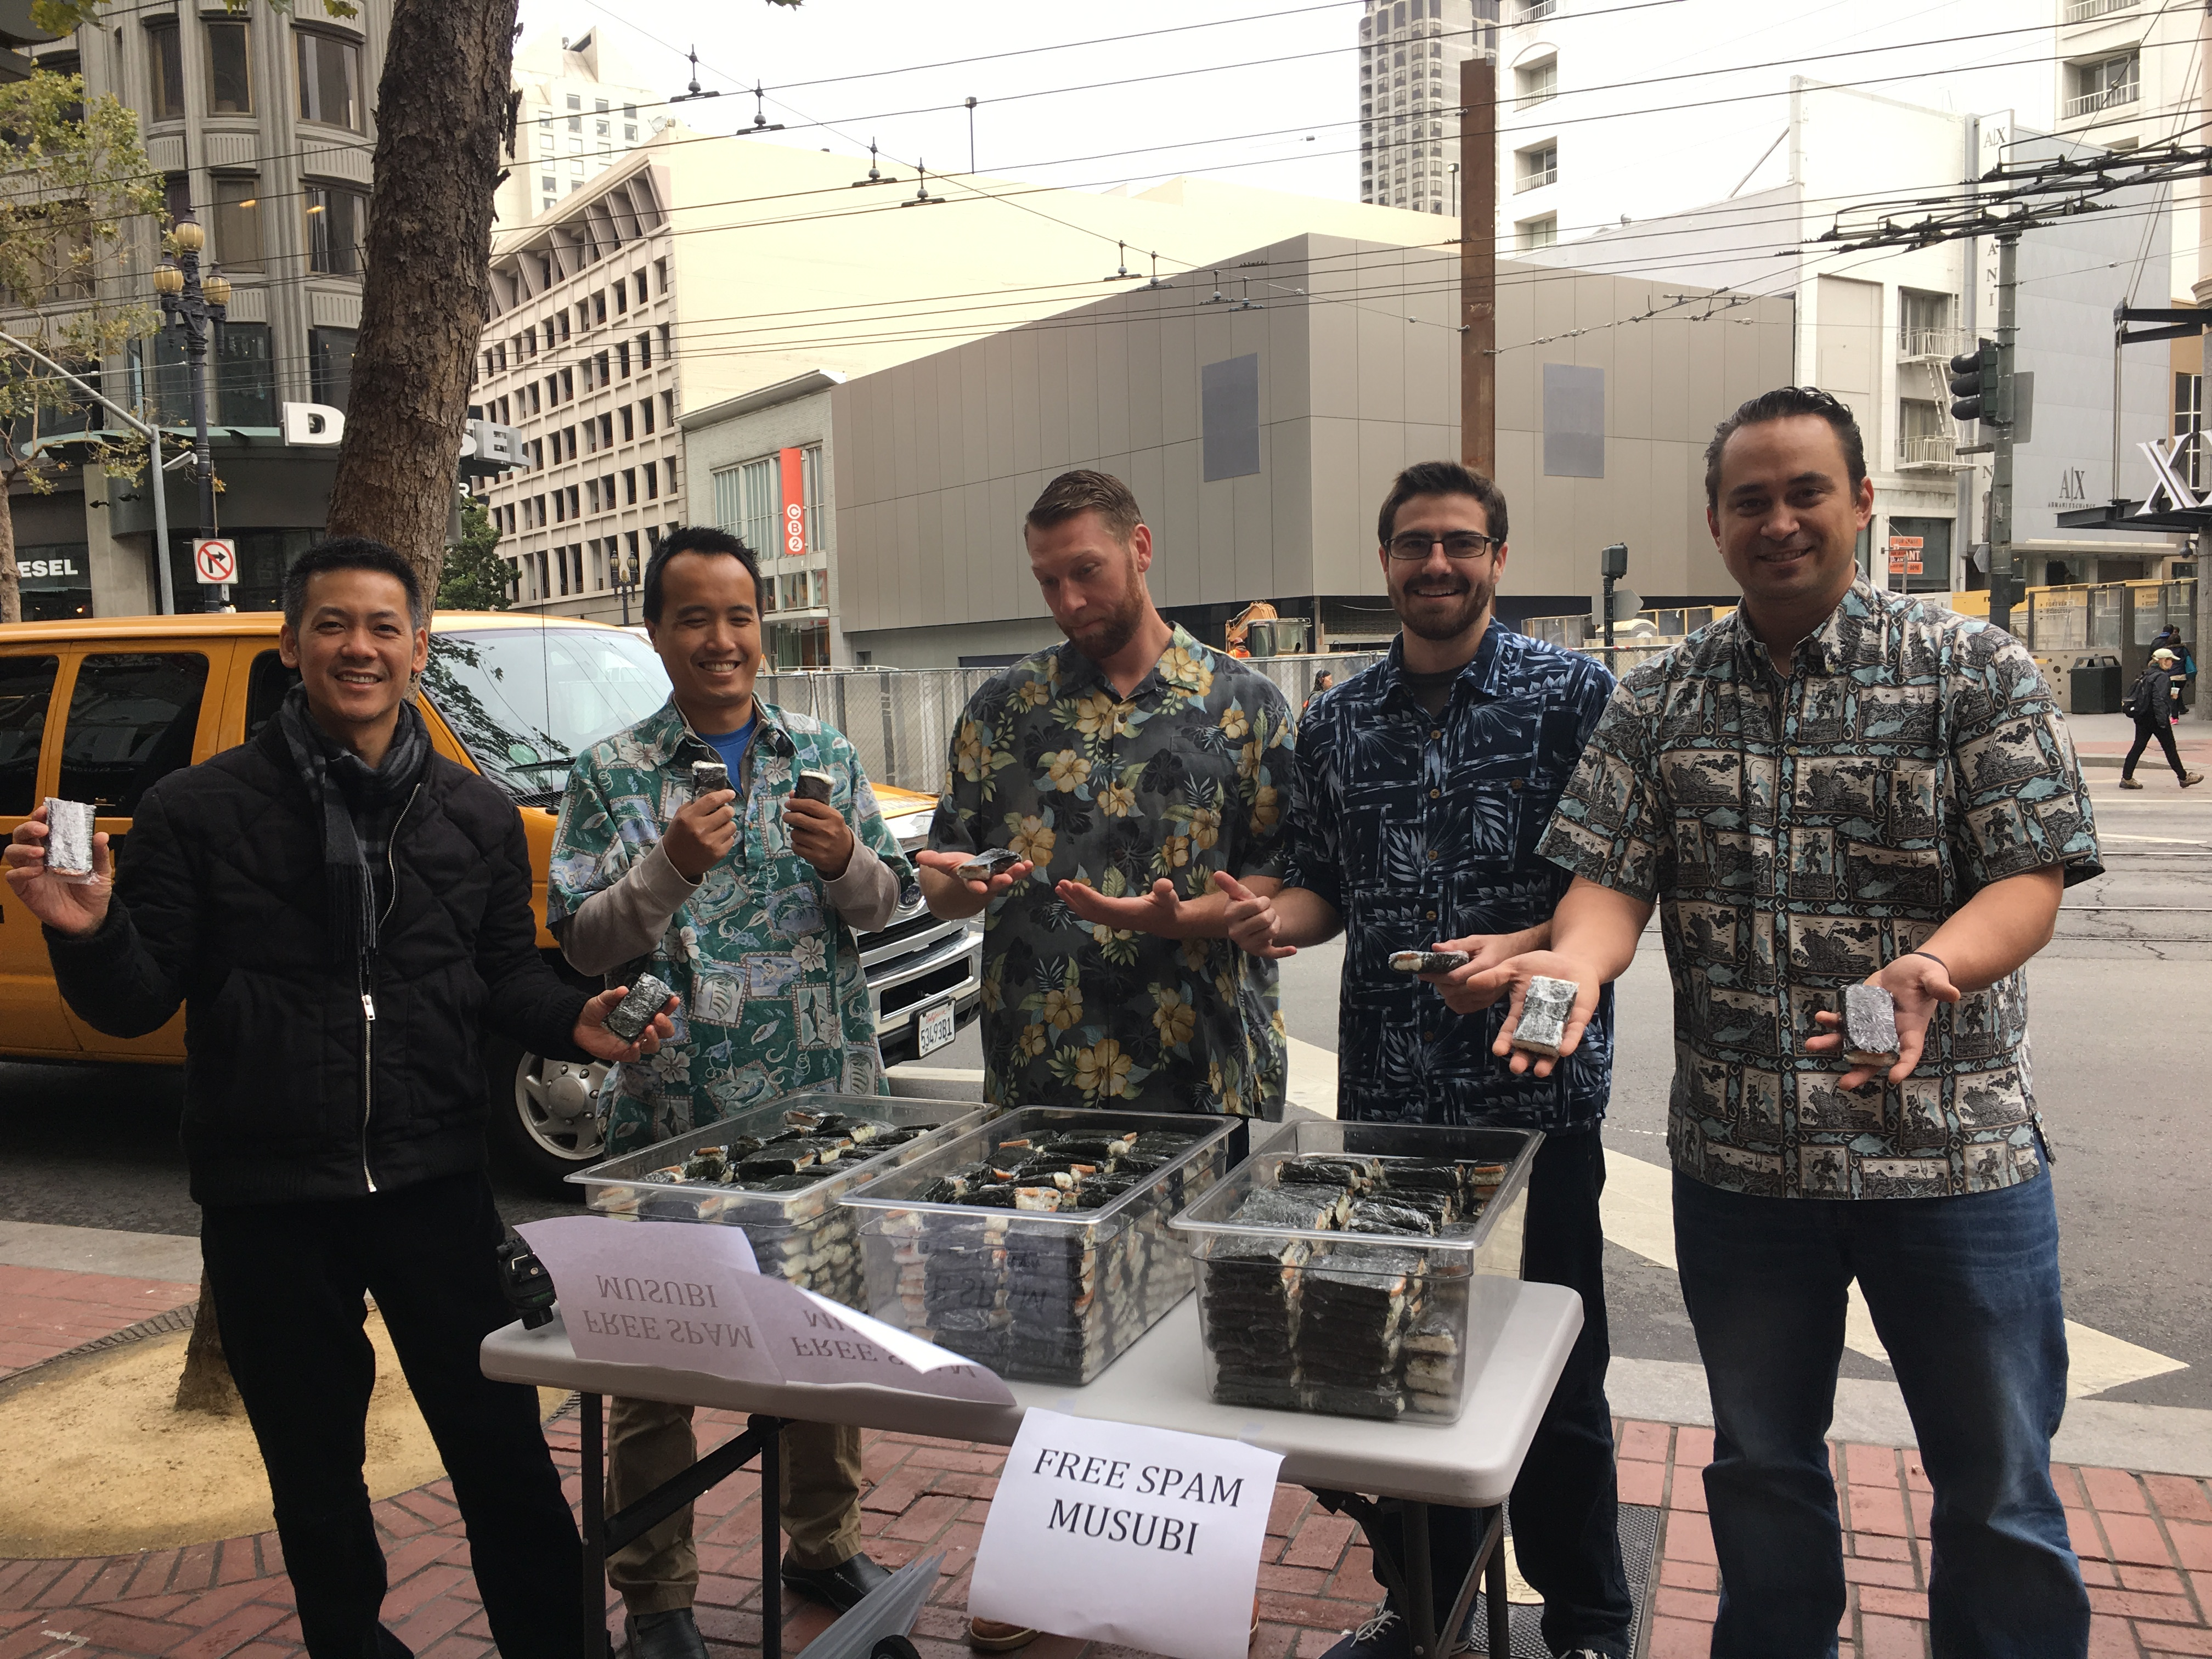 500 Startups and 500 Free Spam Musubi